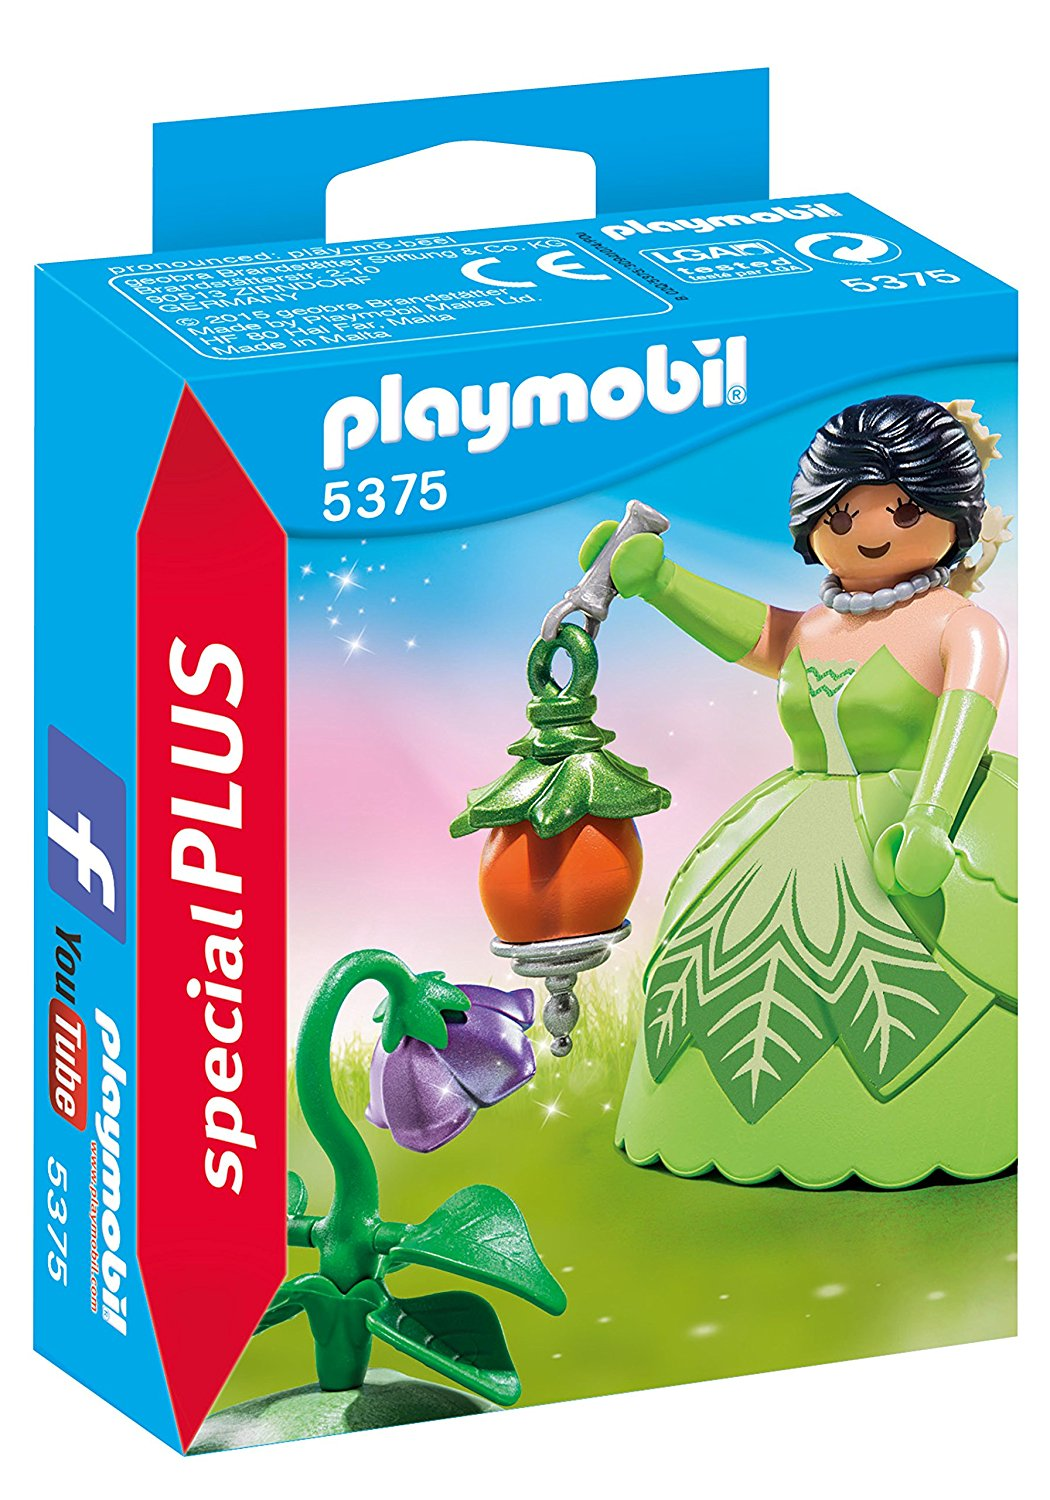 Playmobil 5375 Princesa del Bosque